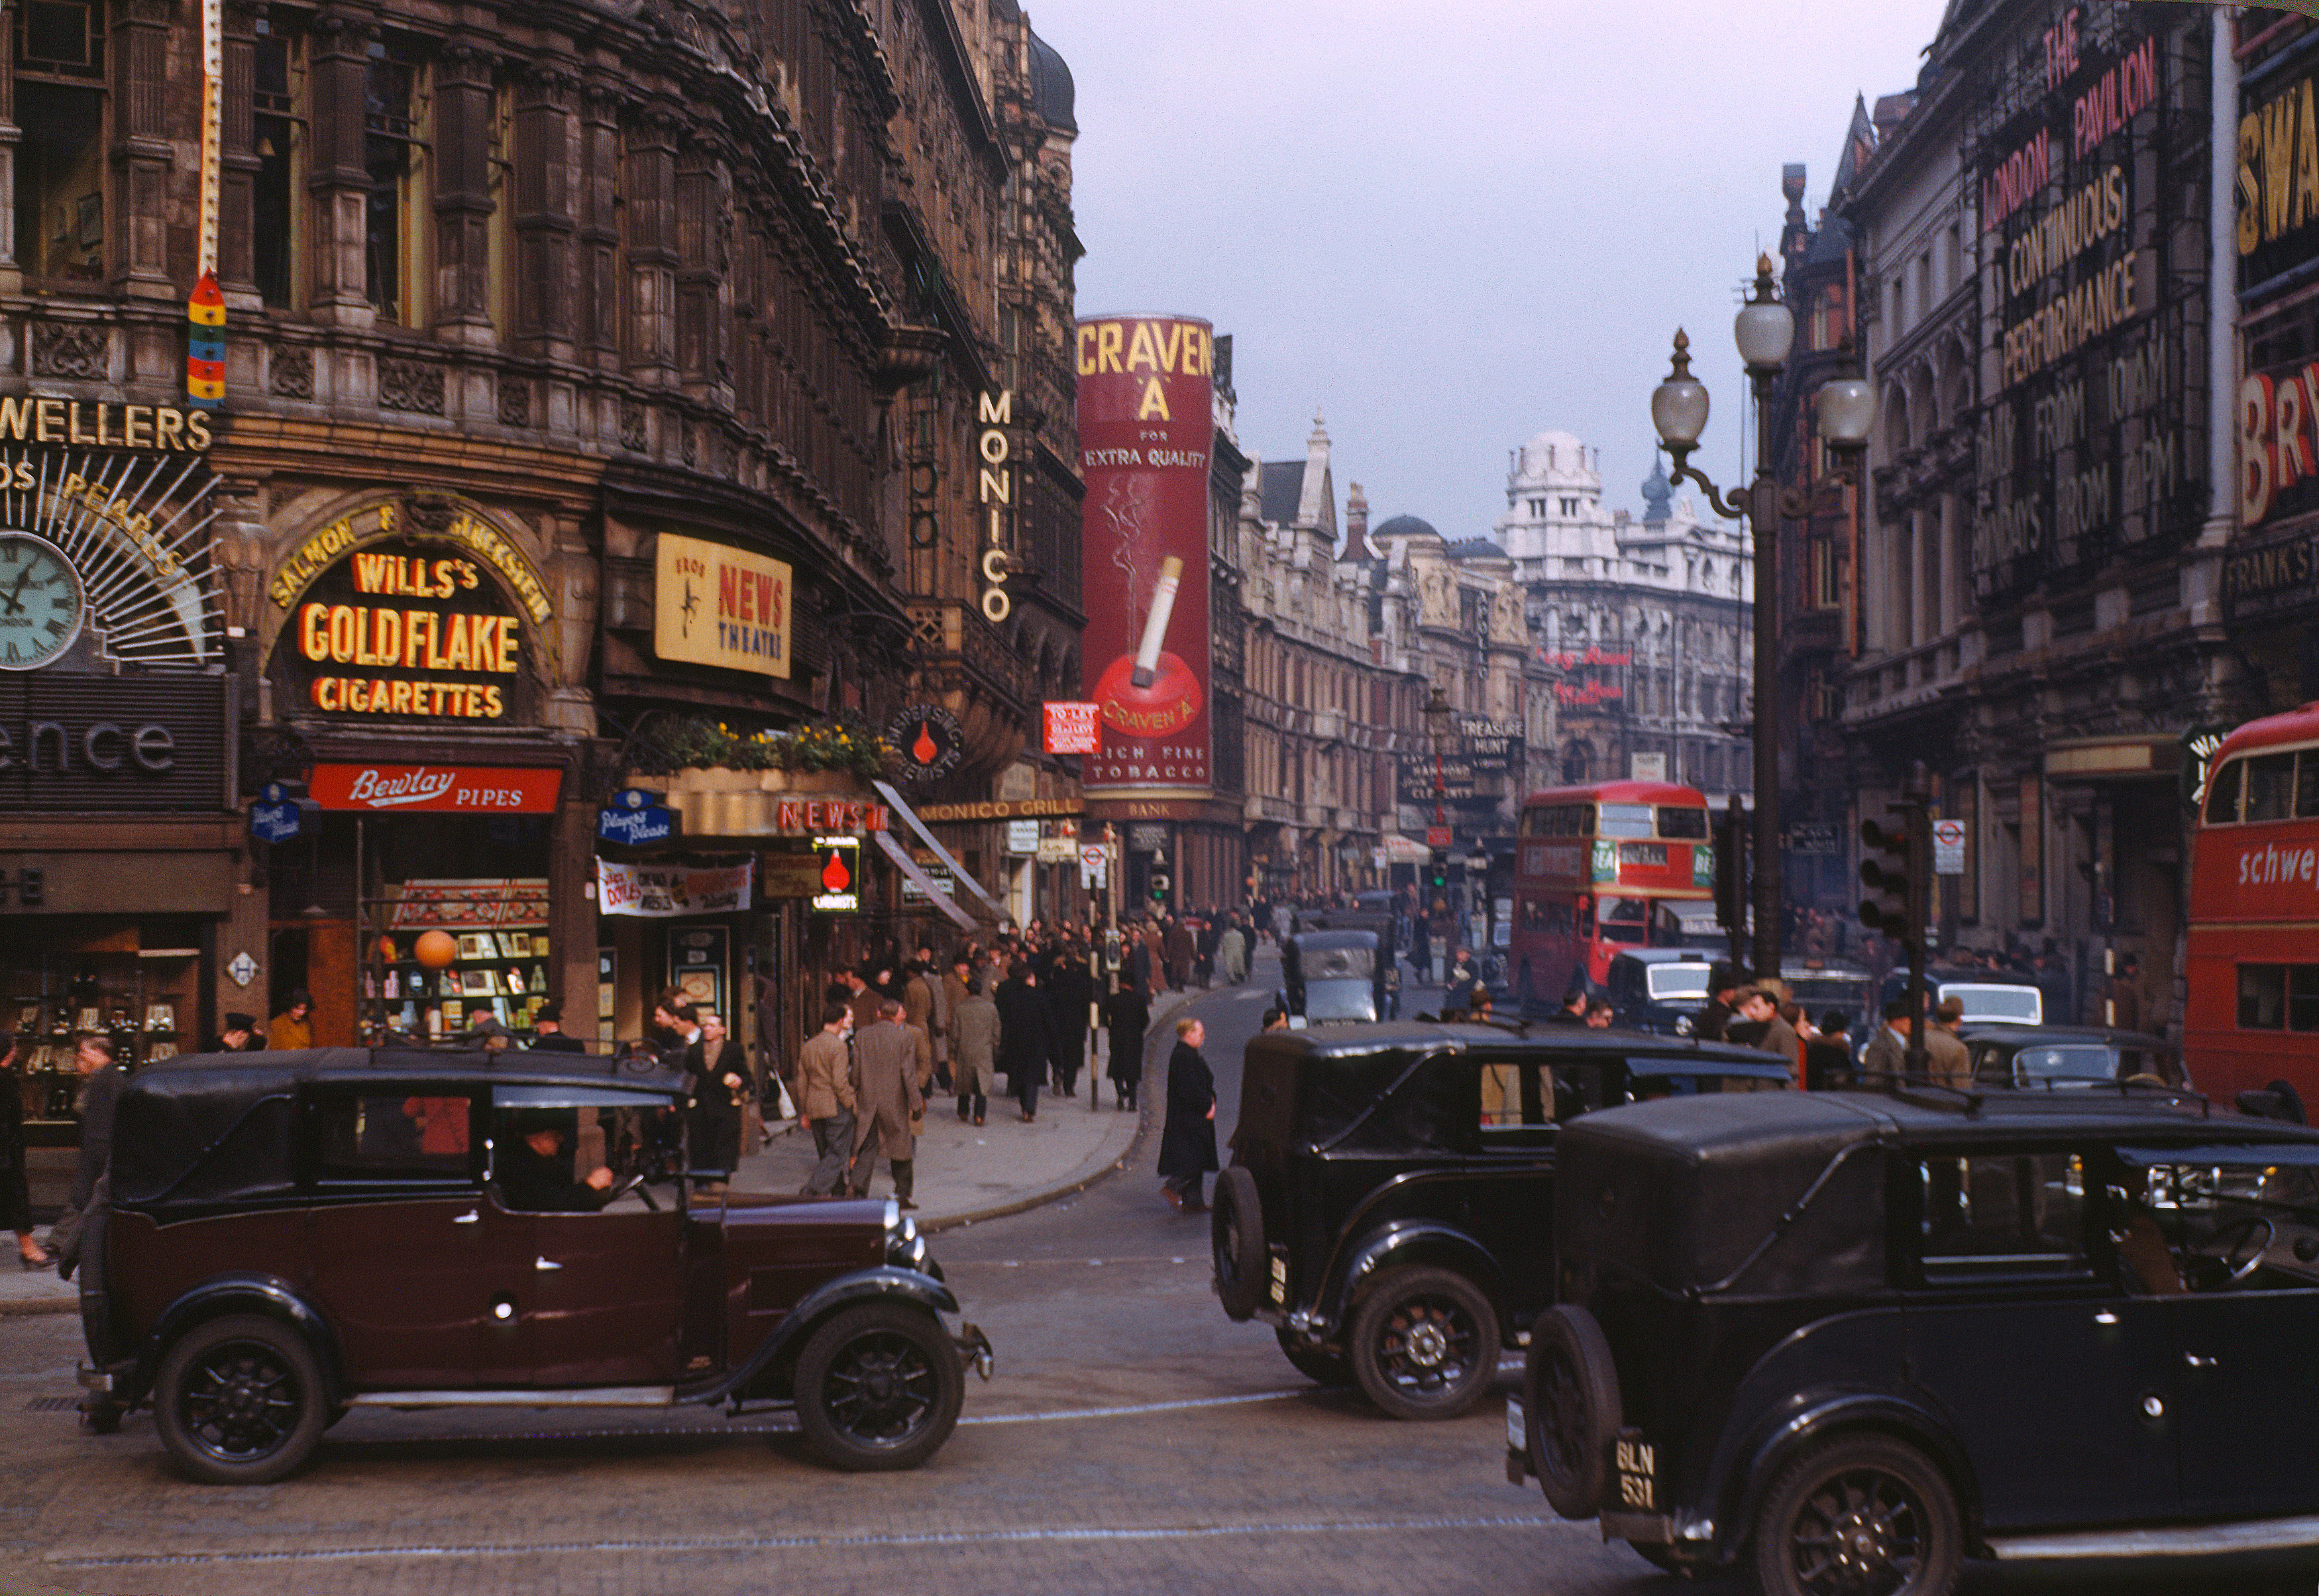 Kodachrome vintage photograph of London